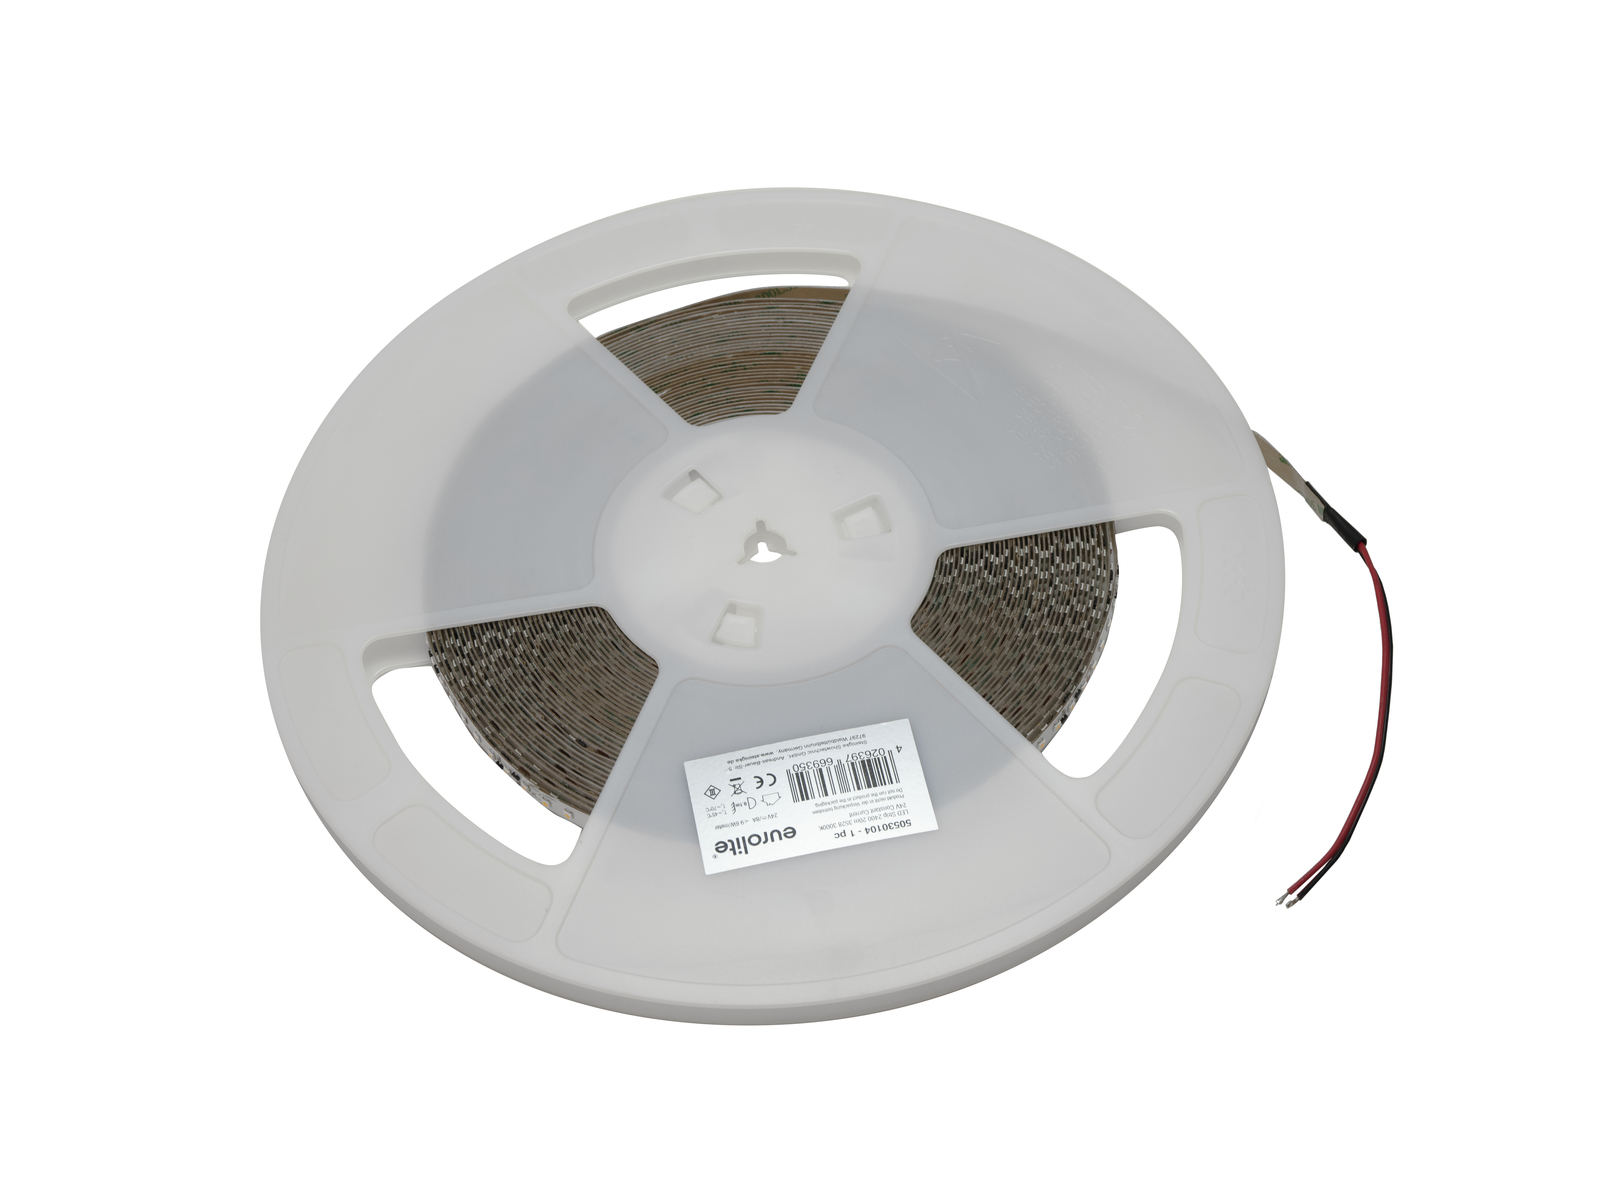 EUROLITE LED Strip 2400 20m 3528 3000K 24V Constant Current